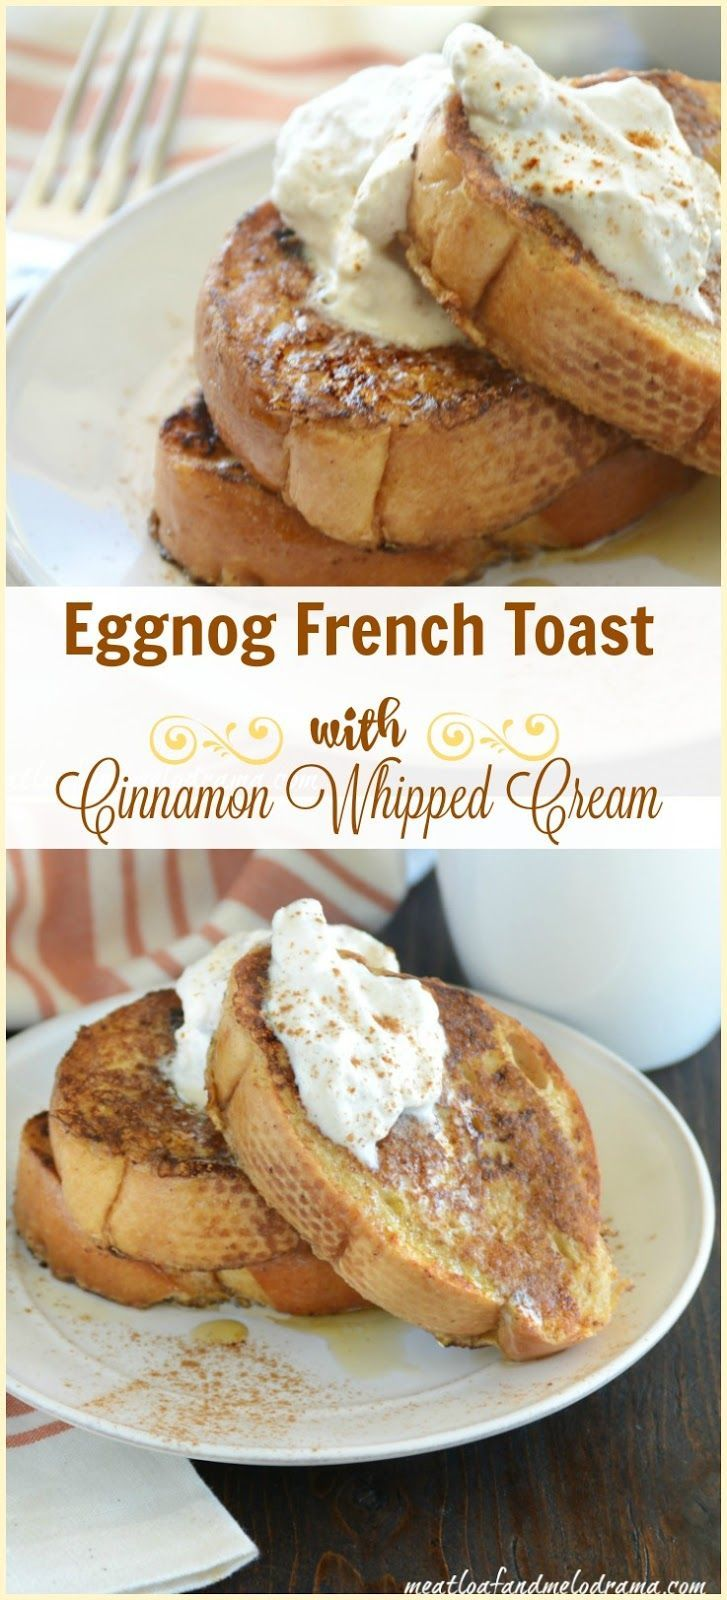 5721 best french recipes images on pinterest cooking food french eggnog french toast with cinnamon whipped cream xmas recipesbrunch forumfinder Gallery